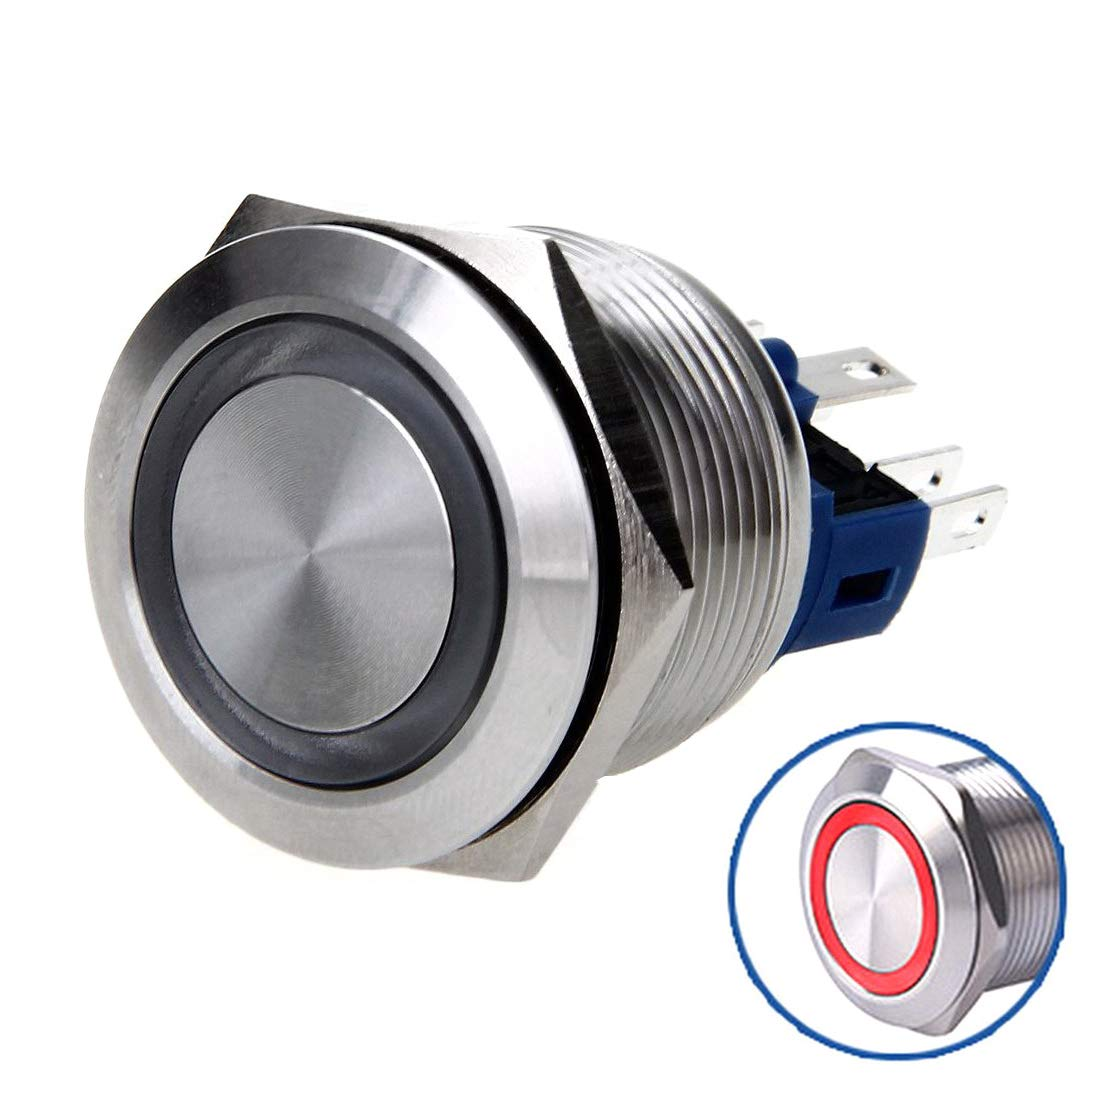 WerFamily Angel Eye White LED 22mm Stainless Steel Round Metal Momentary Type Push Button Switch 1NO 1NC